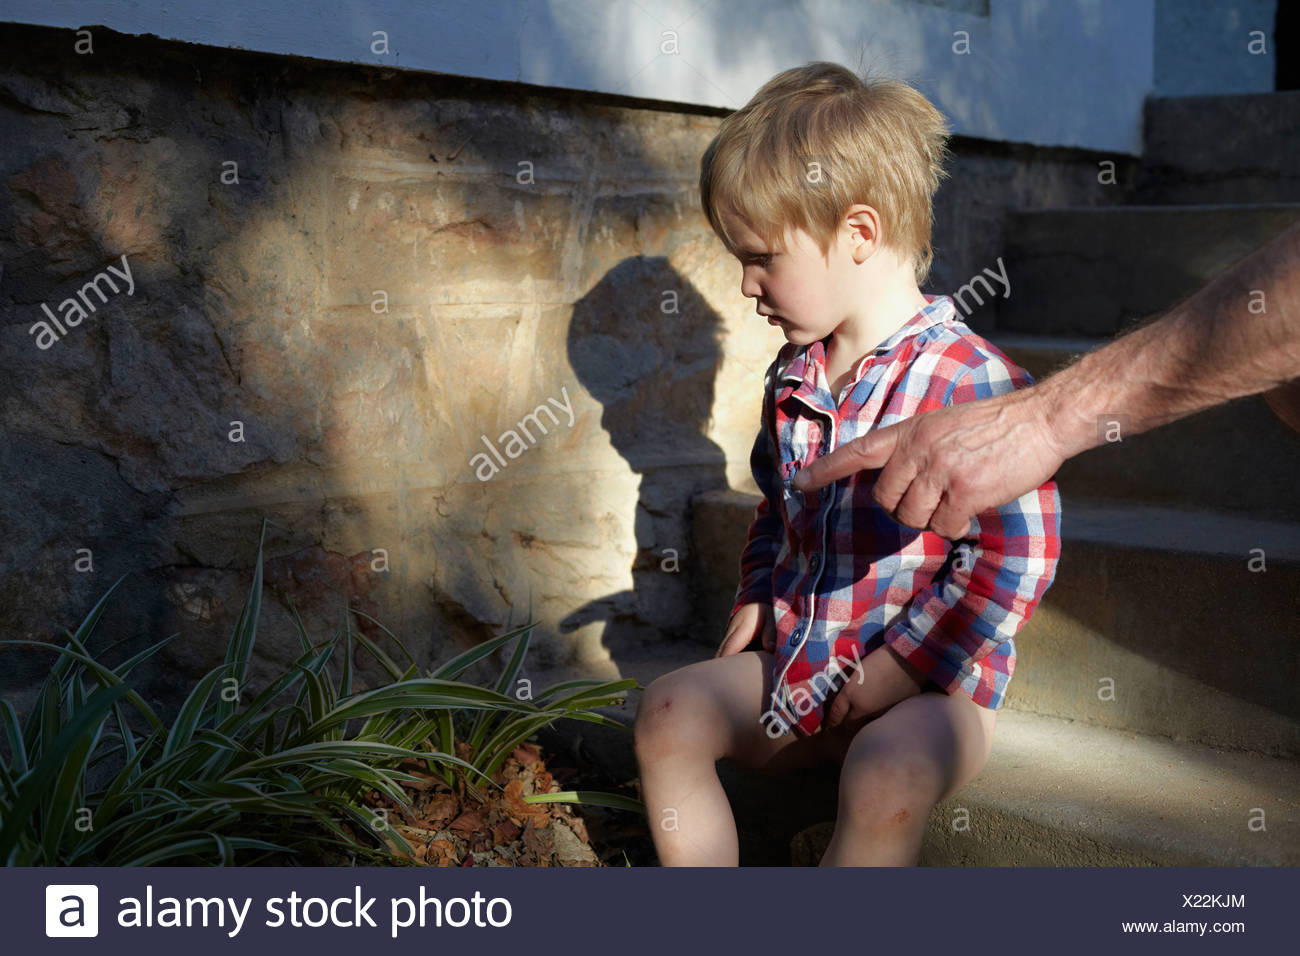 Father pointing to moth for son - Stock Image